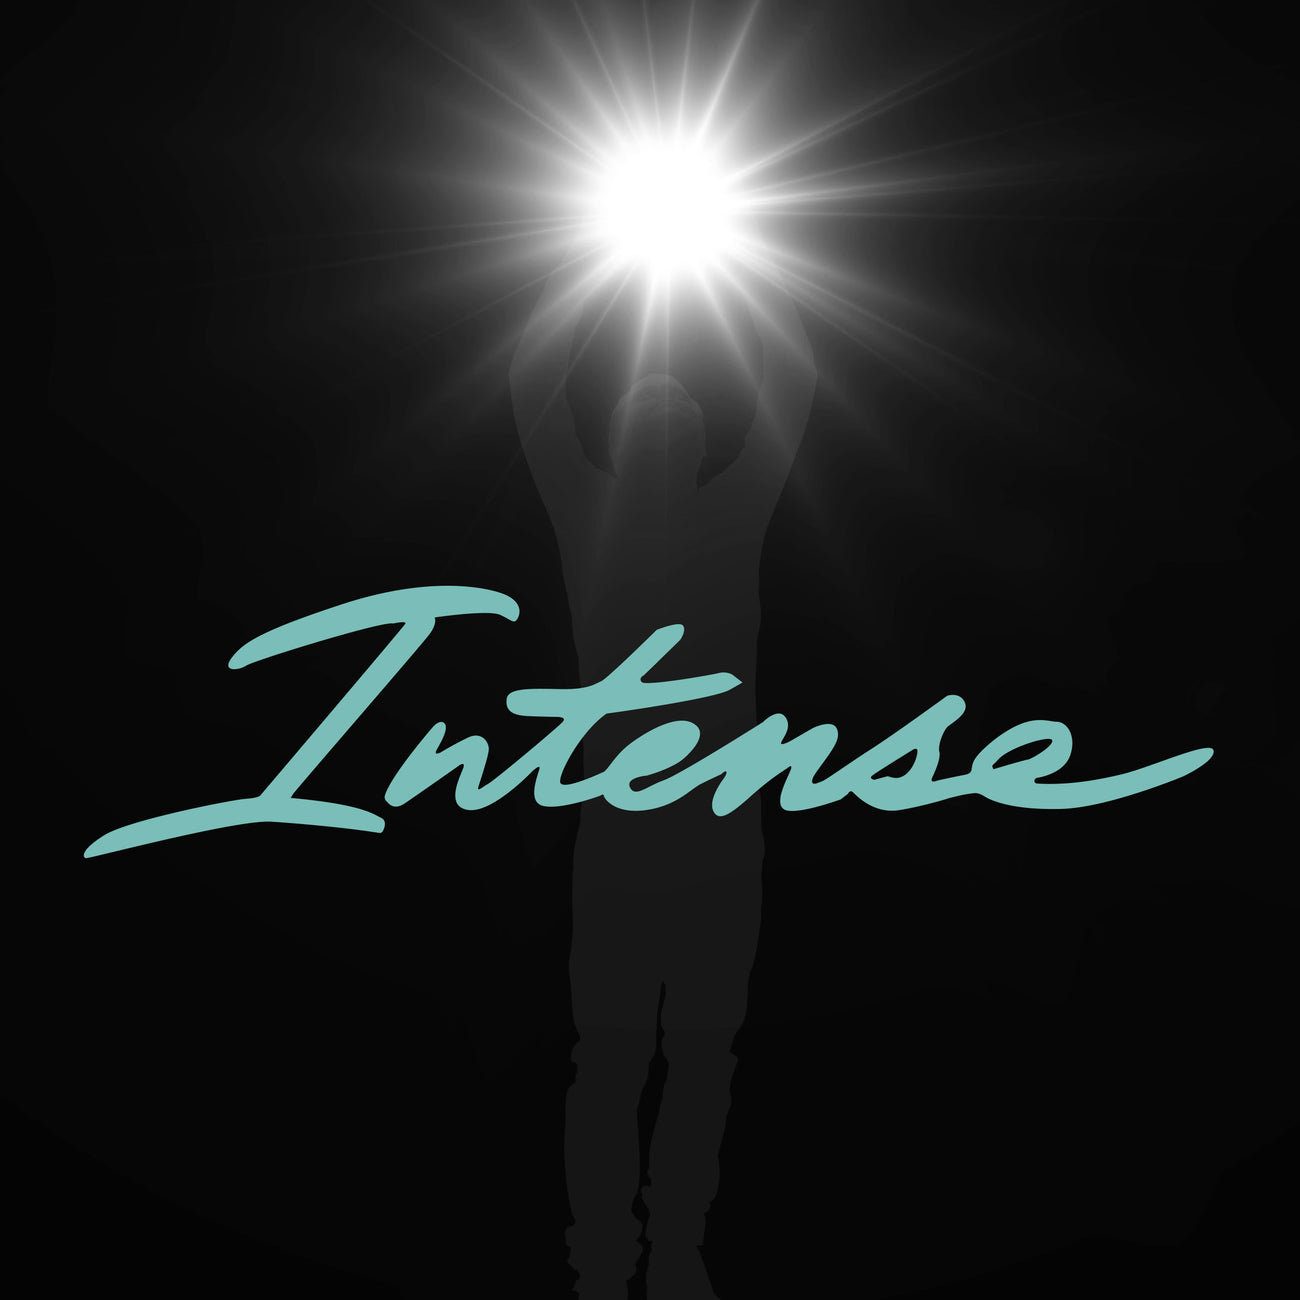 Armin van Buuren - Intense (The Most Intense Edition) (4CD + DVD)